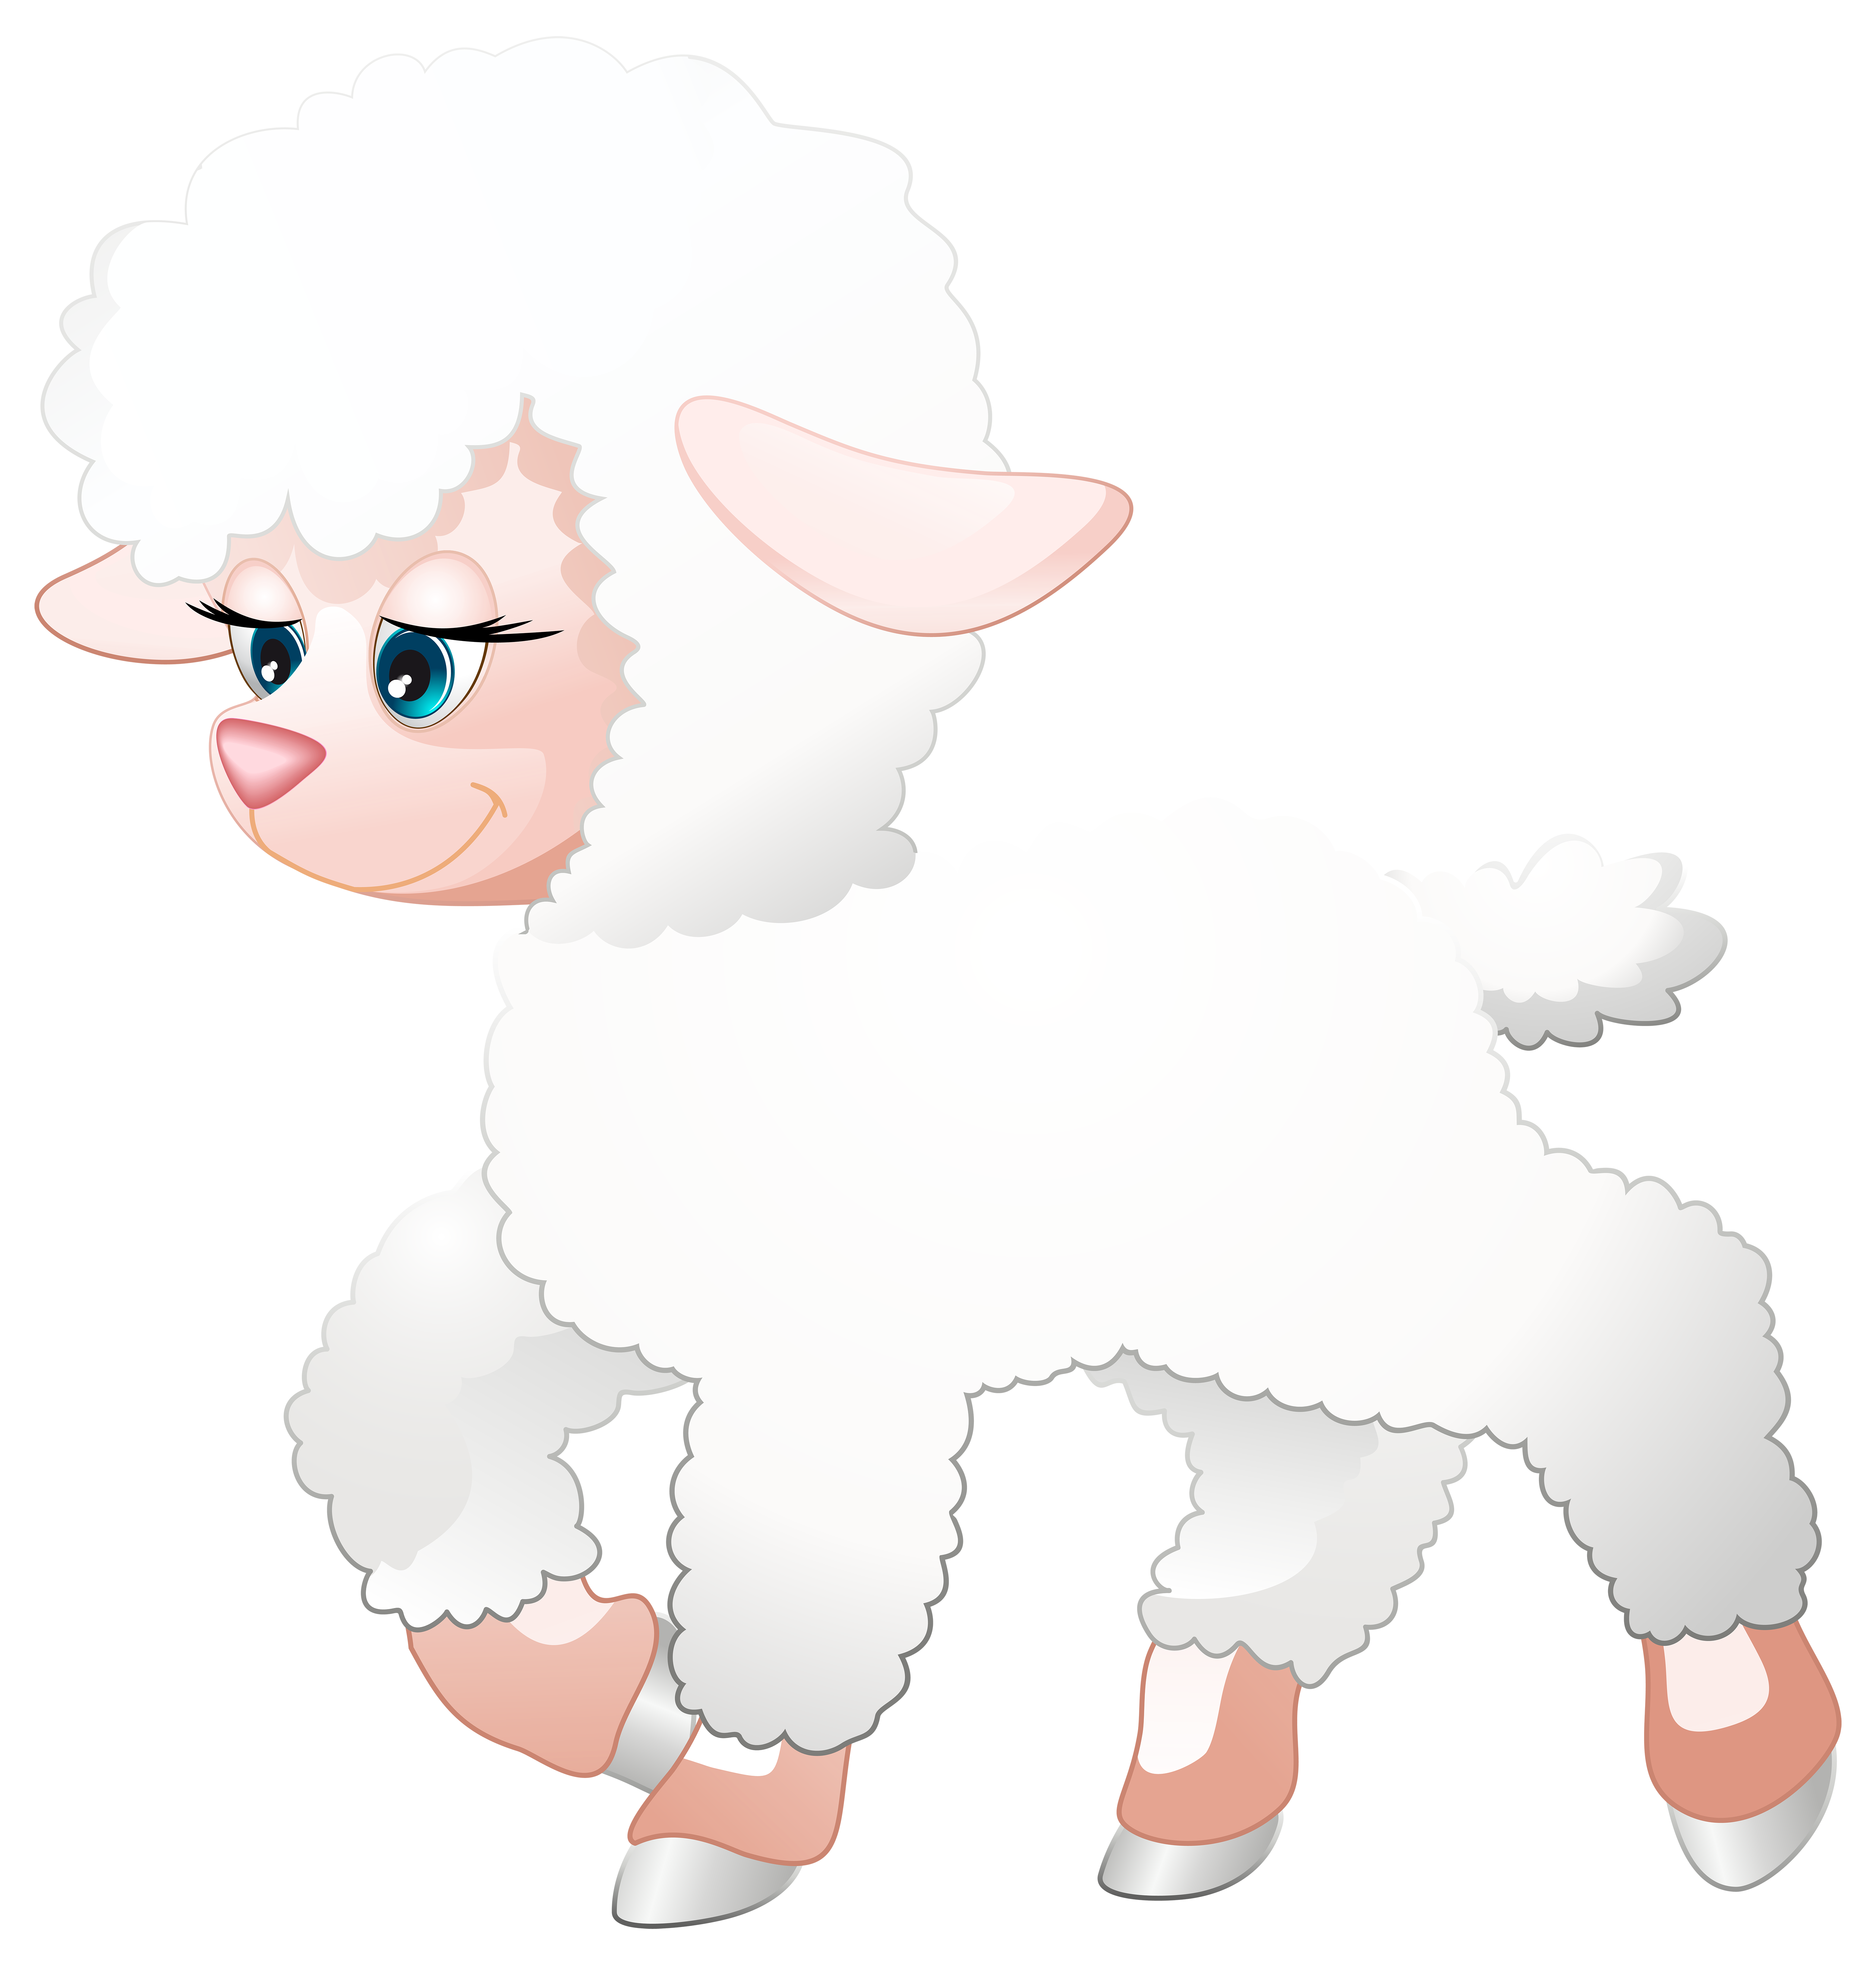 Poodle dog clipart jpg stock Cute Lamb Transparent PNG Clip Art Image | Gallery Yopriceville ... jpg stock